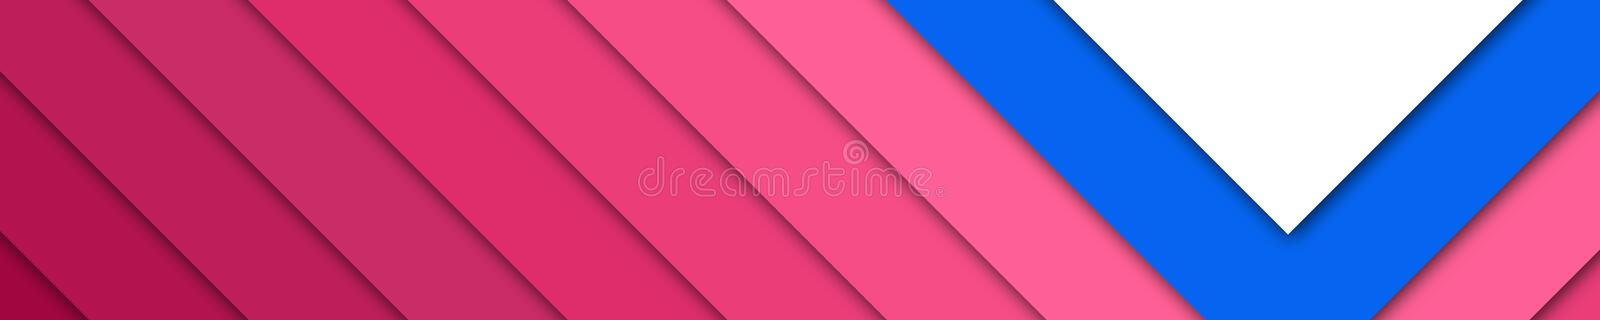 Elegant banner red, blue and white colors for website stock image